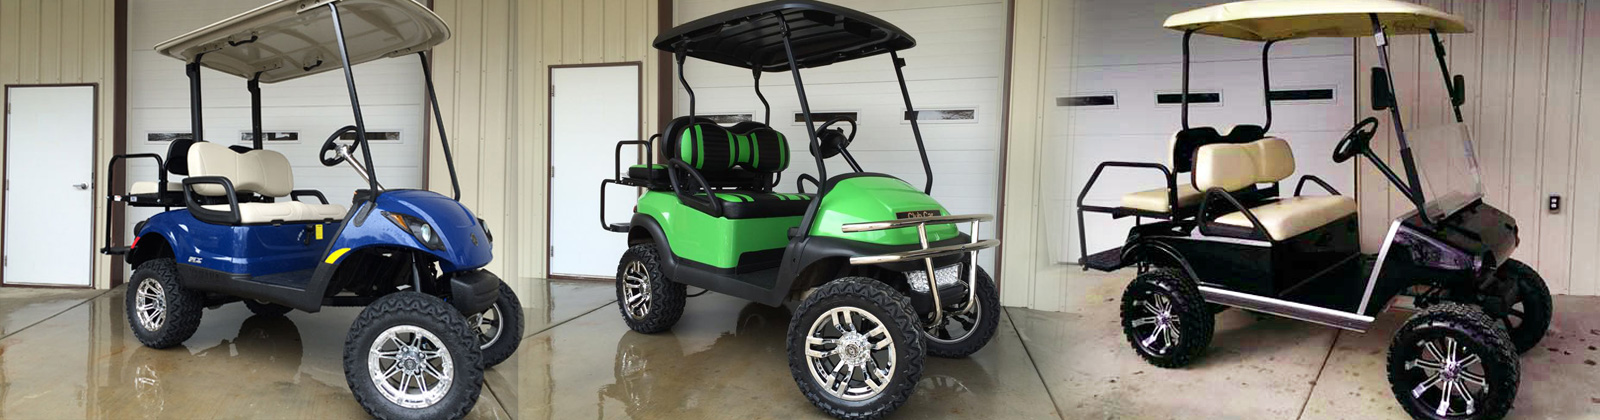 New Club Cars, Yamaha and EZGO golf cars available in many colors, available in gas or electric, lifted and non lifted versions.